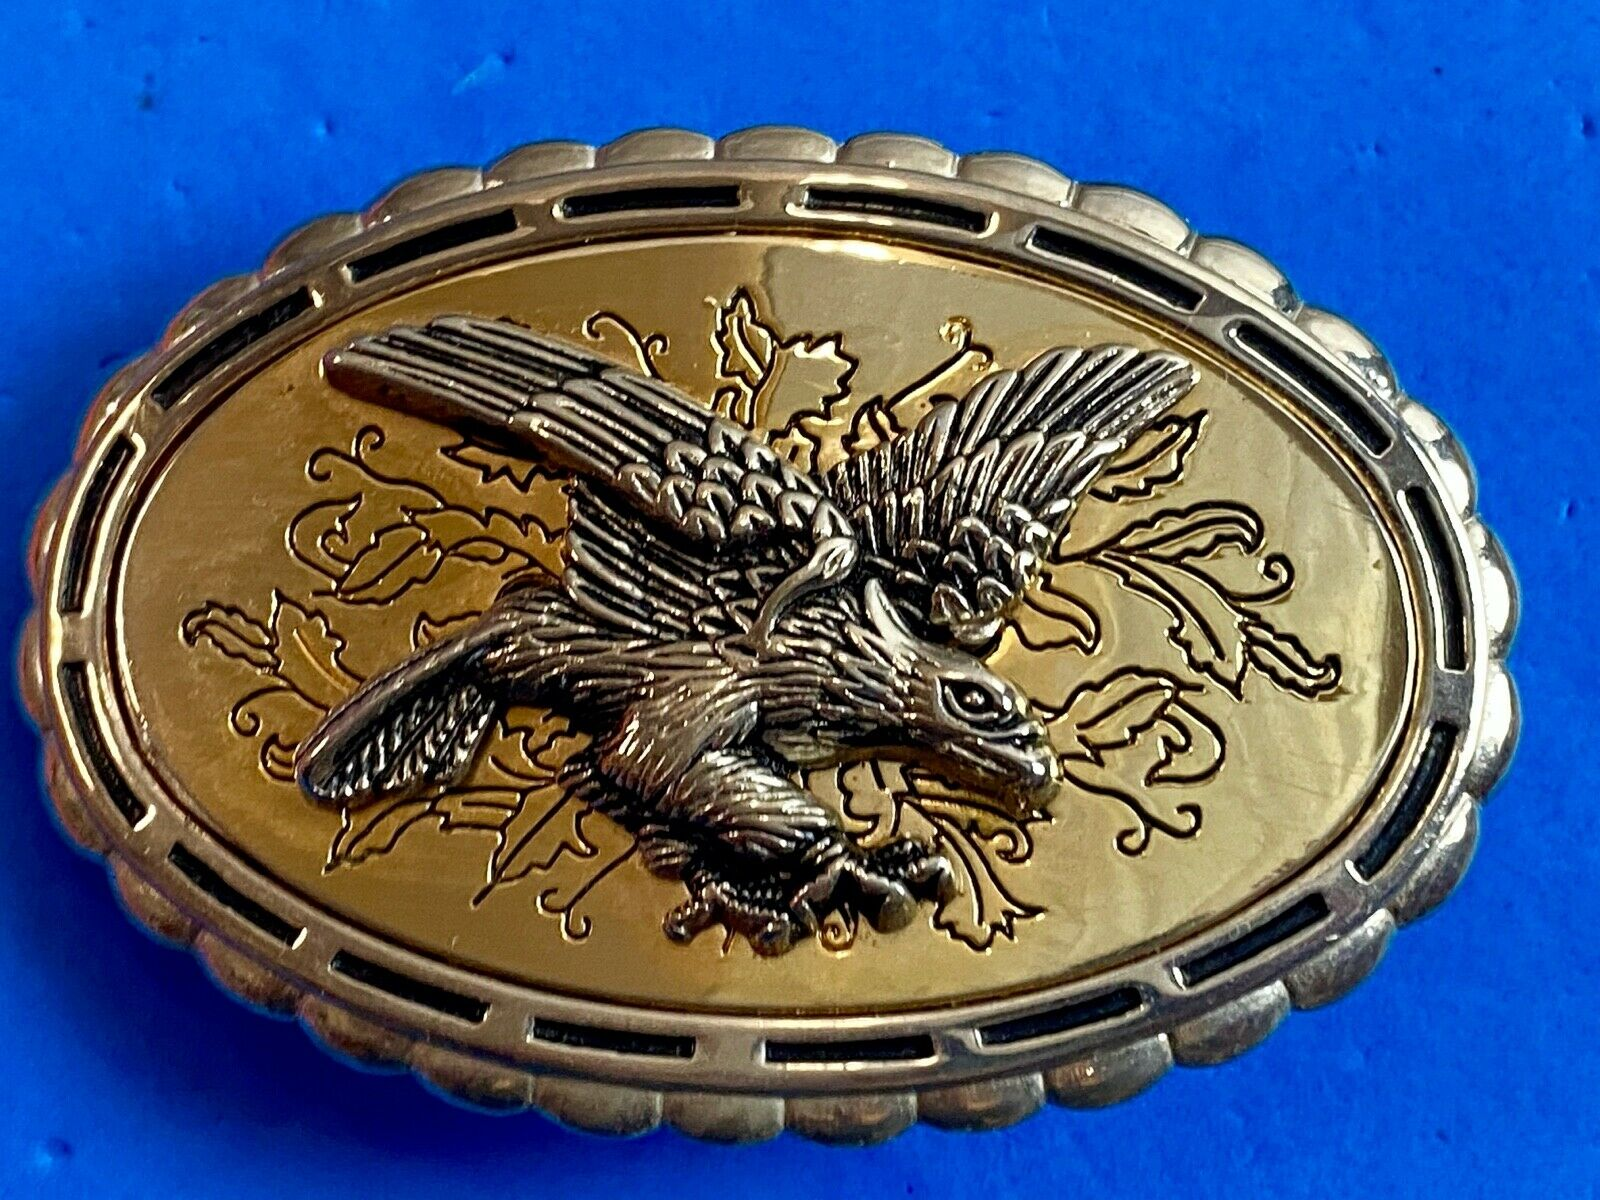 DIFFERENT - attacking eagle on western belt buckle